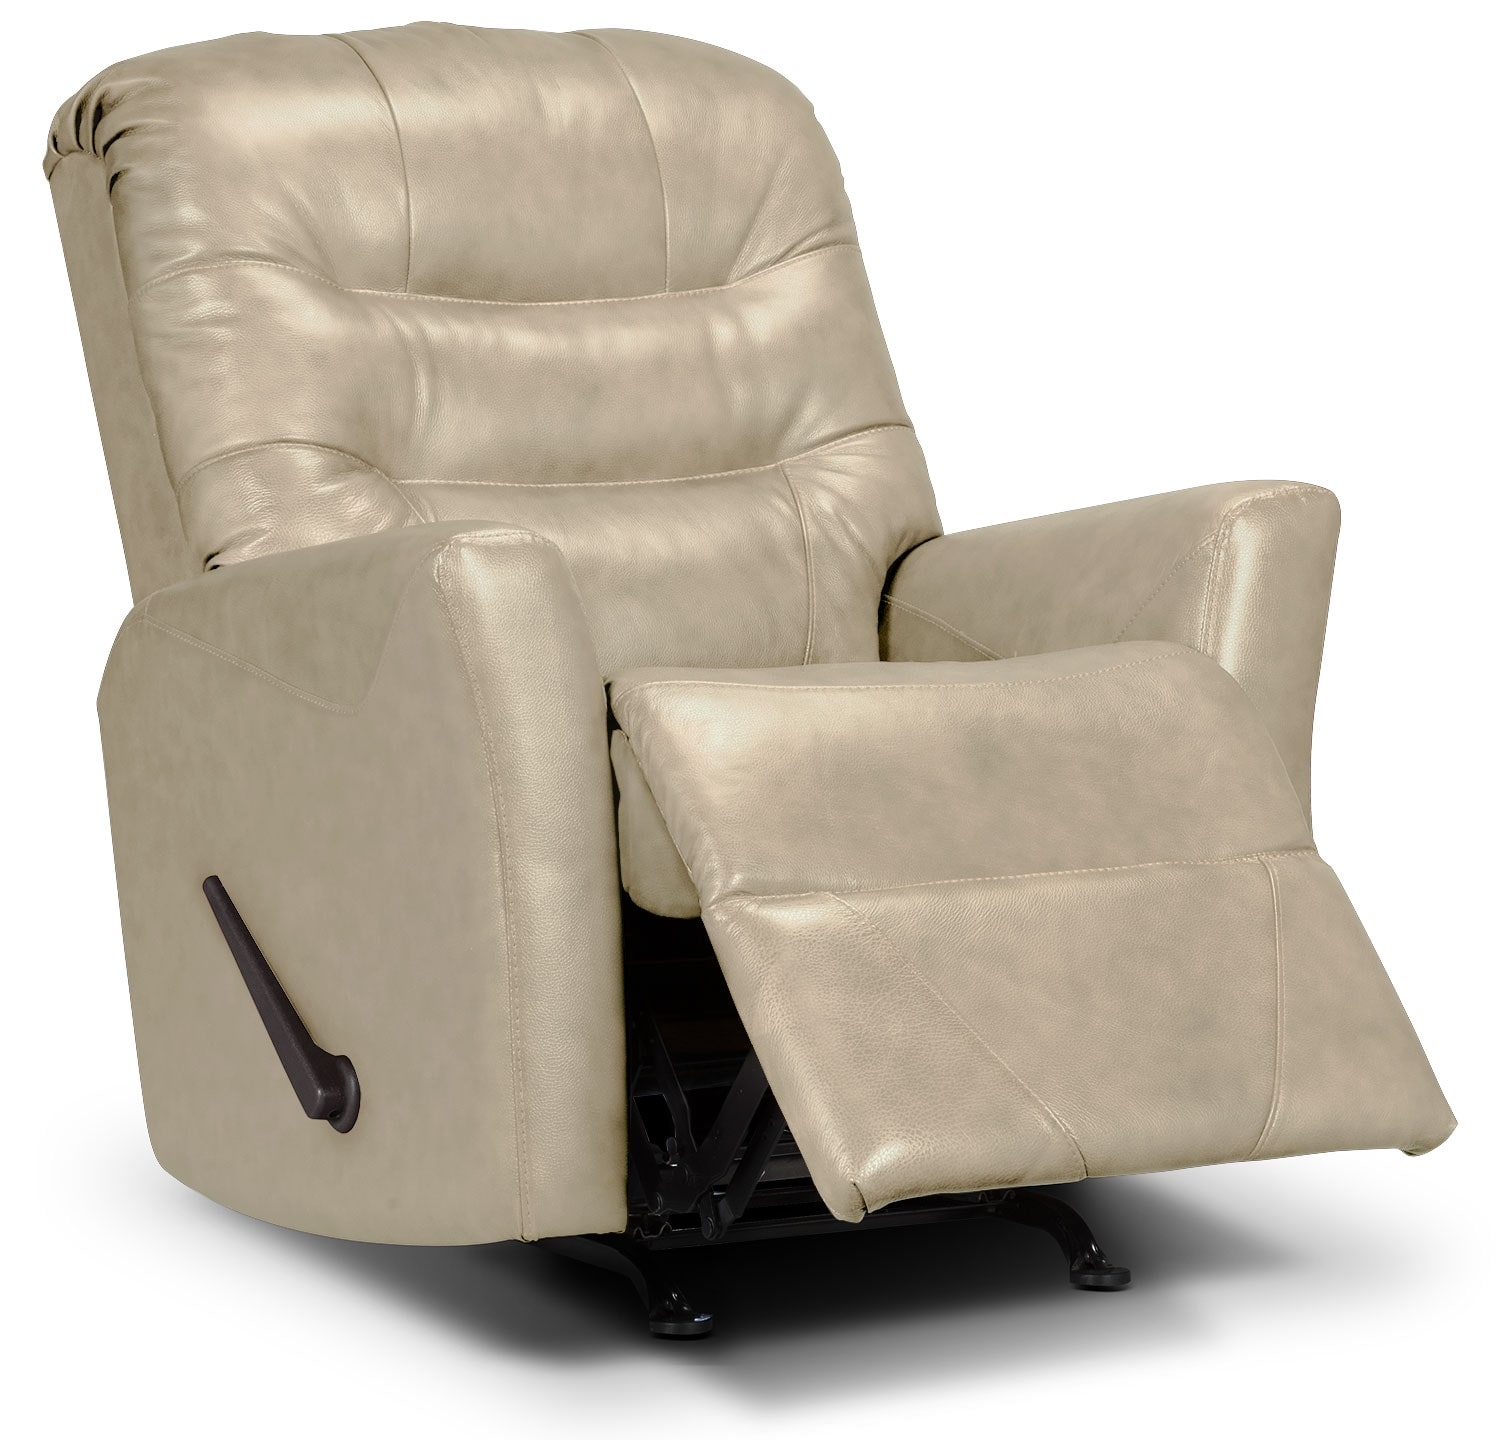 Designed2B Recliner 4560 Genuine Leather Rocker Recliner - Taupe